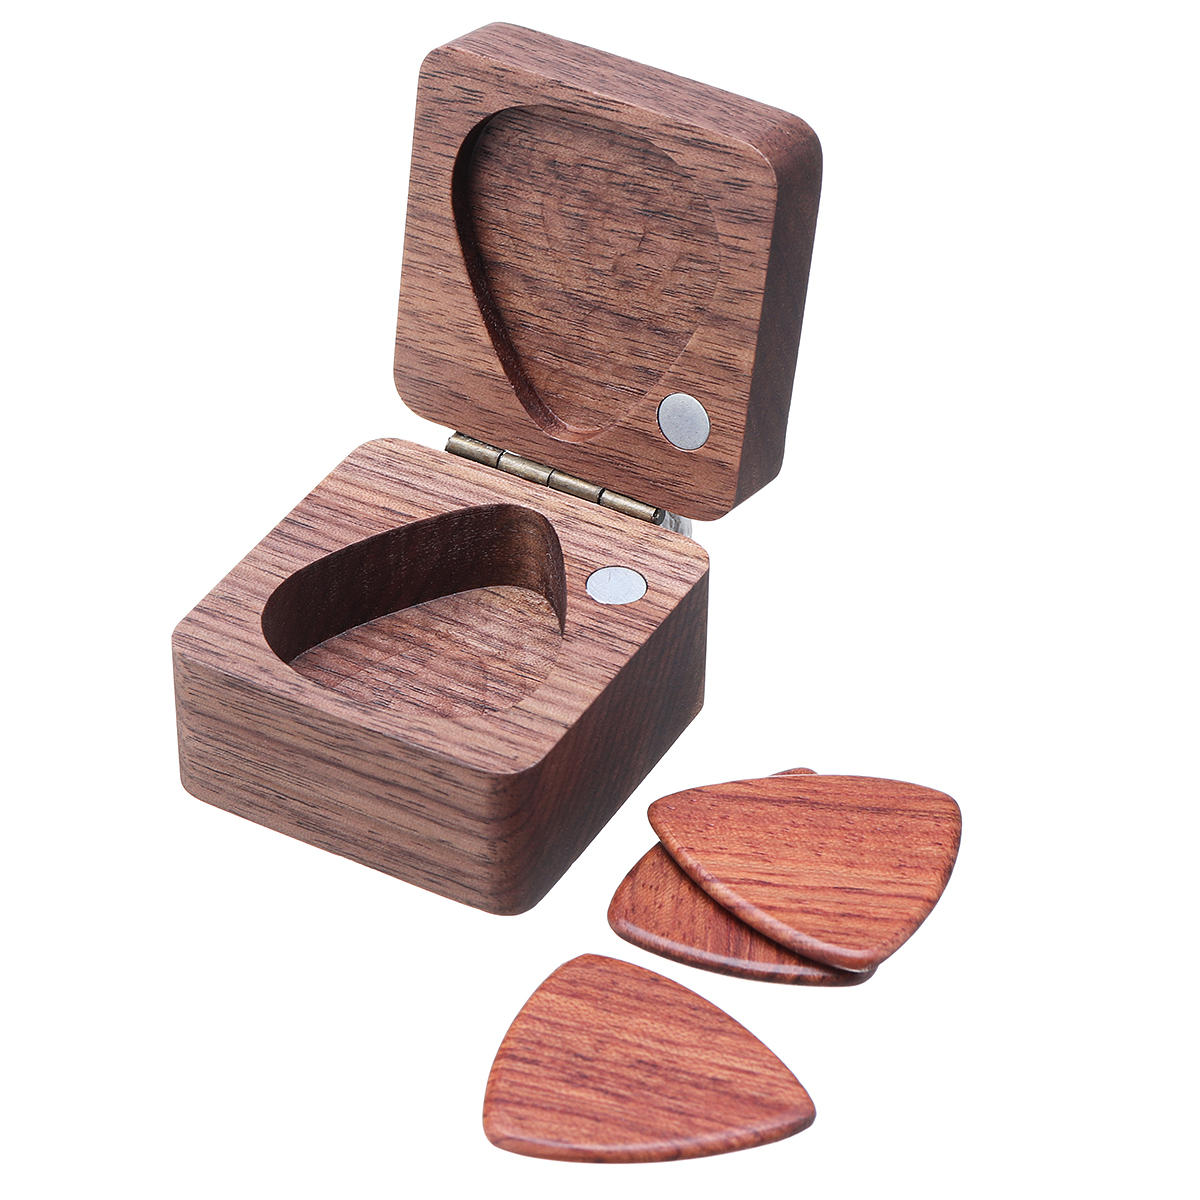 3 Pcs Wooden Heart-shaped Guitar Picks with Wooden Box